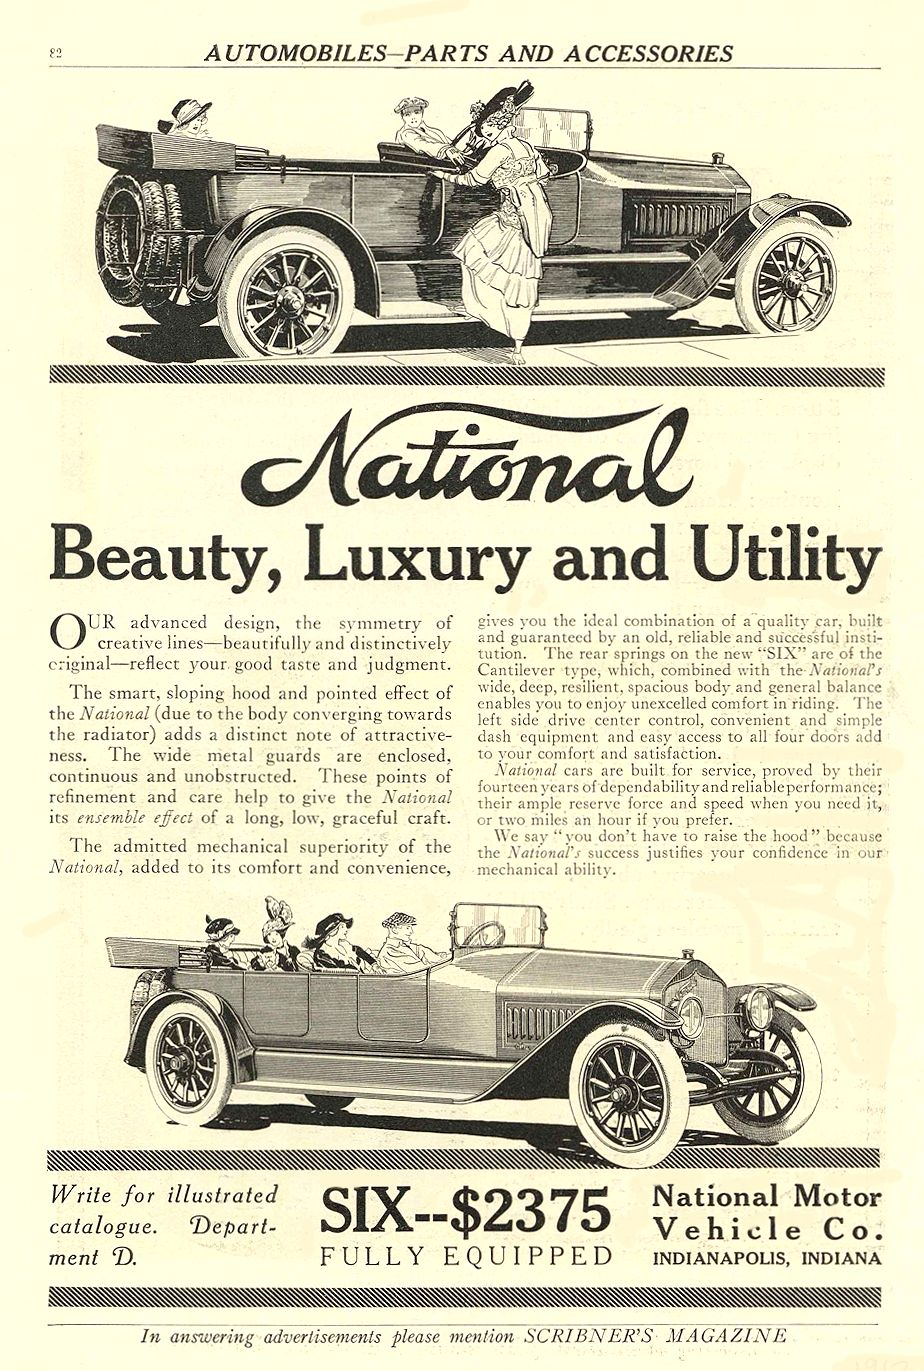 1912 NATIONAL National Beauty, Luxury and Utility SIX–$2375 FULLY EQUIPPED National Motor Vehicle Co. Indianapolis, IND SCRIBNER'S MAGAZINE 1912 6.5″x9.75″ page 82